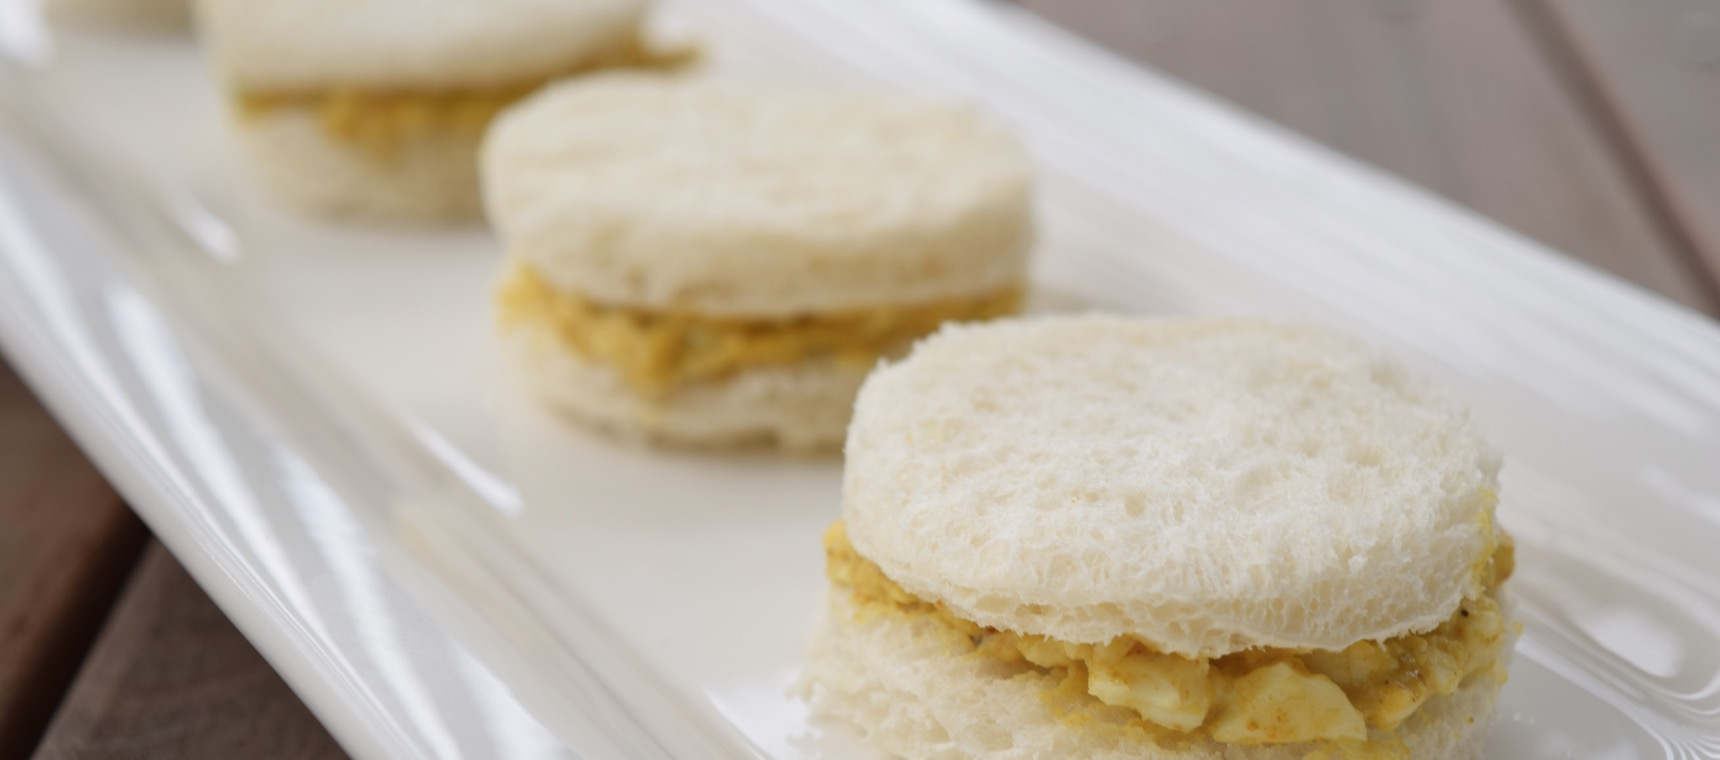 Curried Egg Sandwich Filling